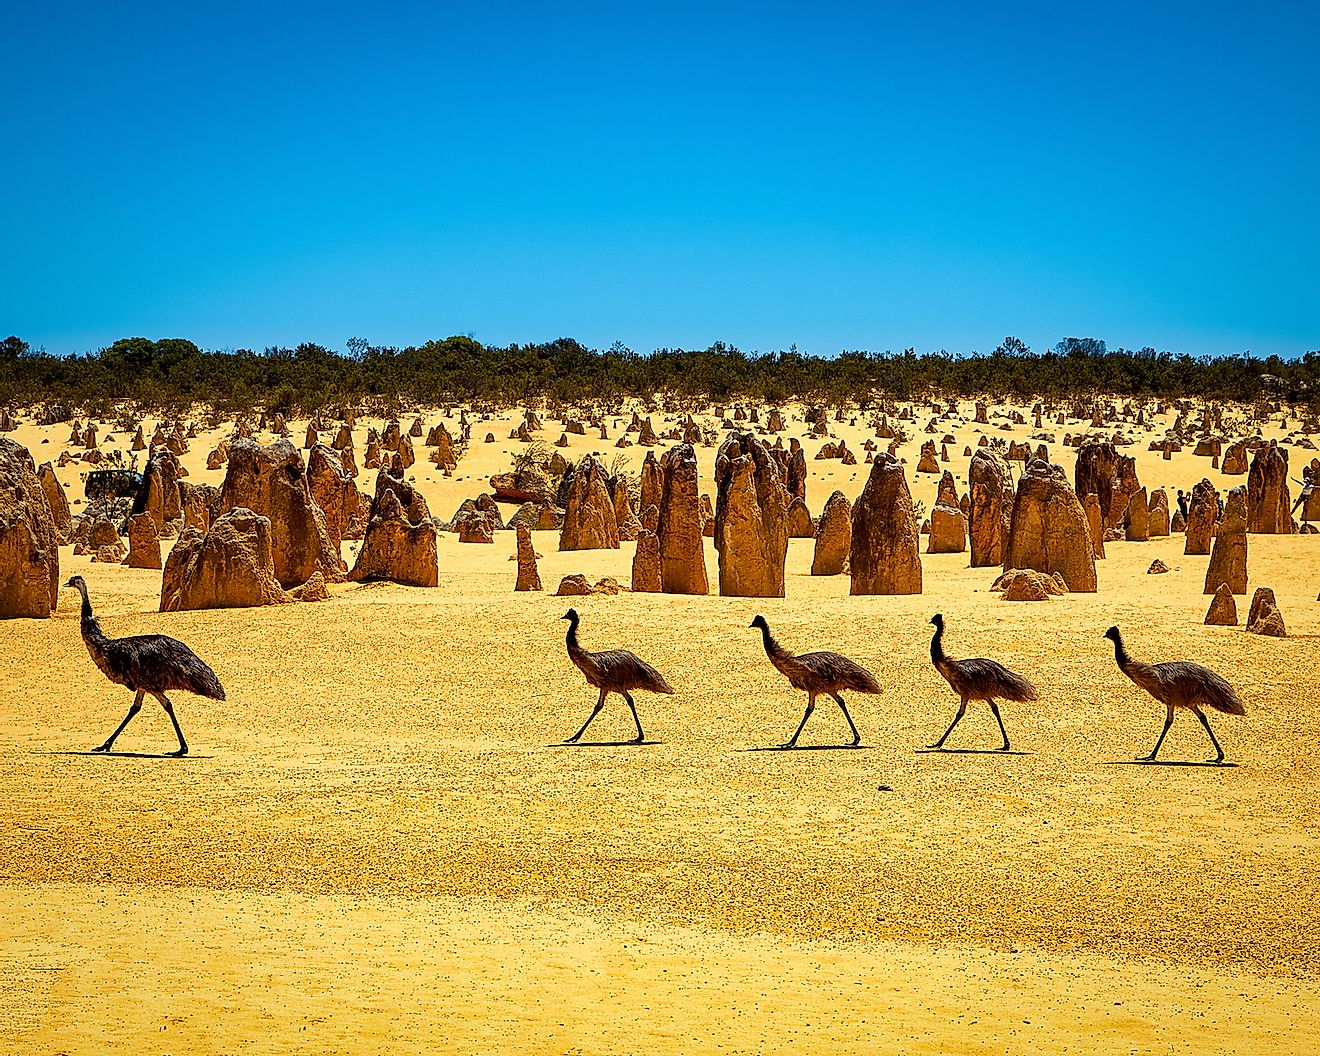 Emus at the Pinnacles Desert, WA, Australia. Image credit: mcography/Shutterstock.com